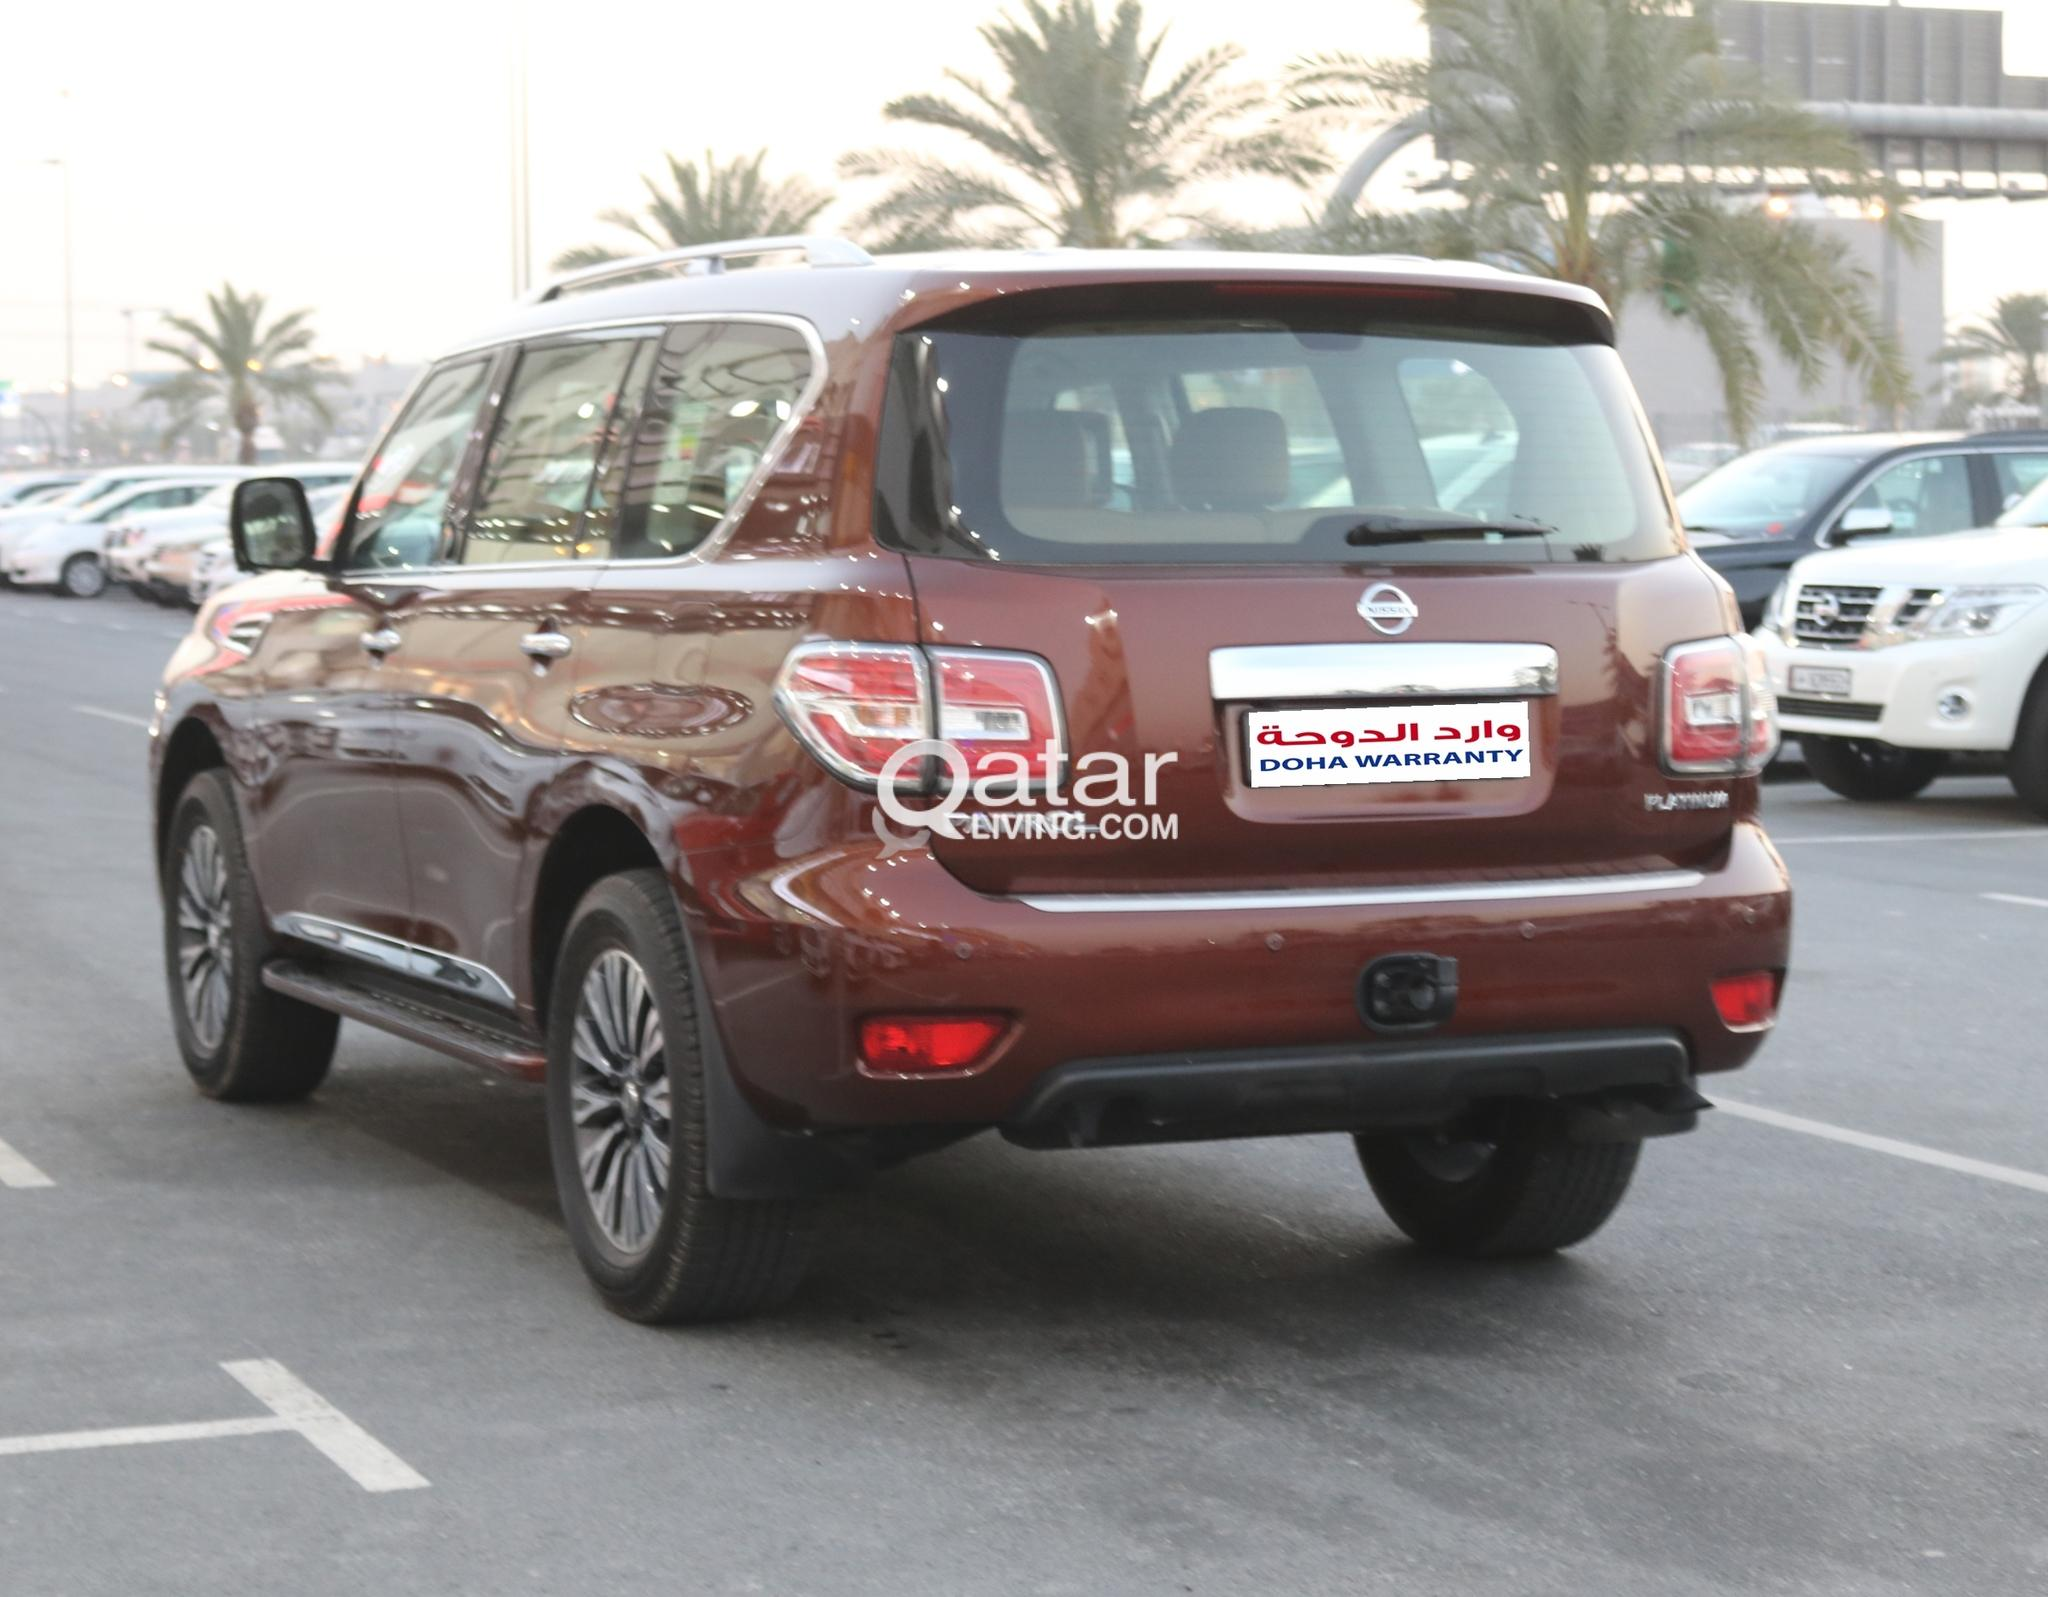 Nissan - Patrol Platinum 4.0 L    Model 2019